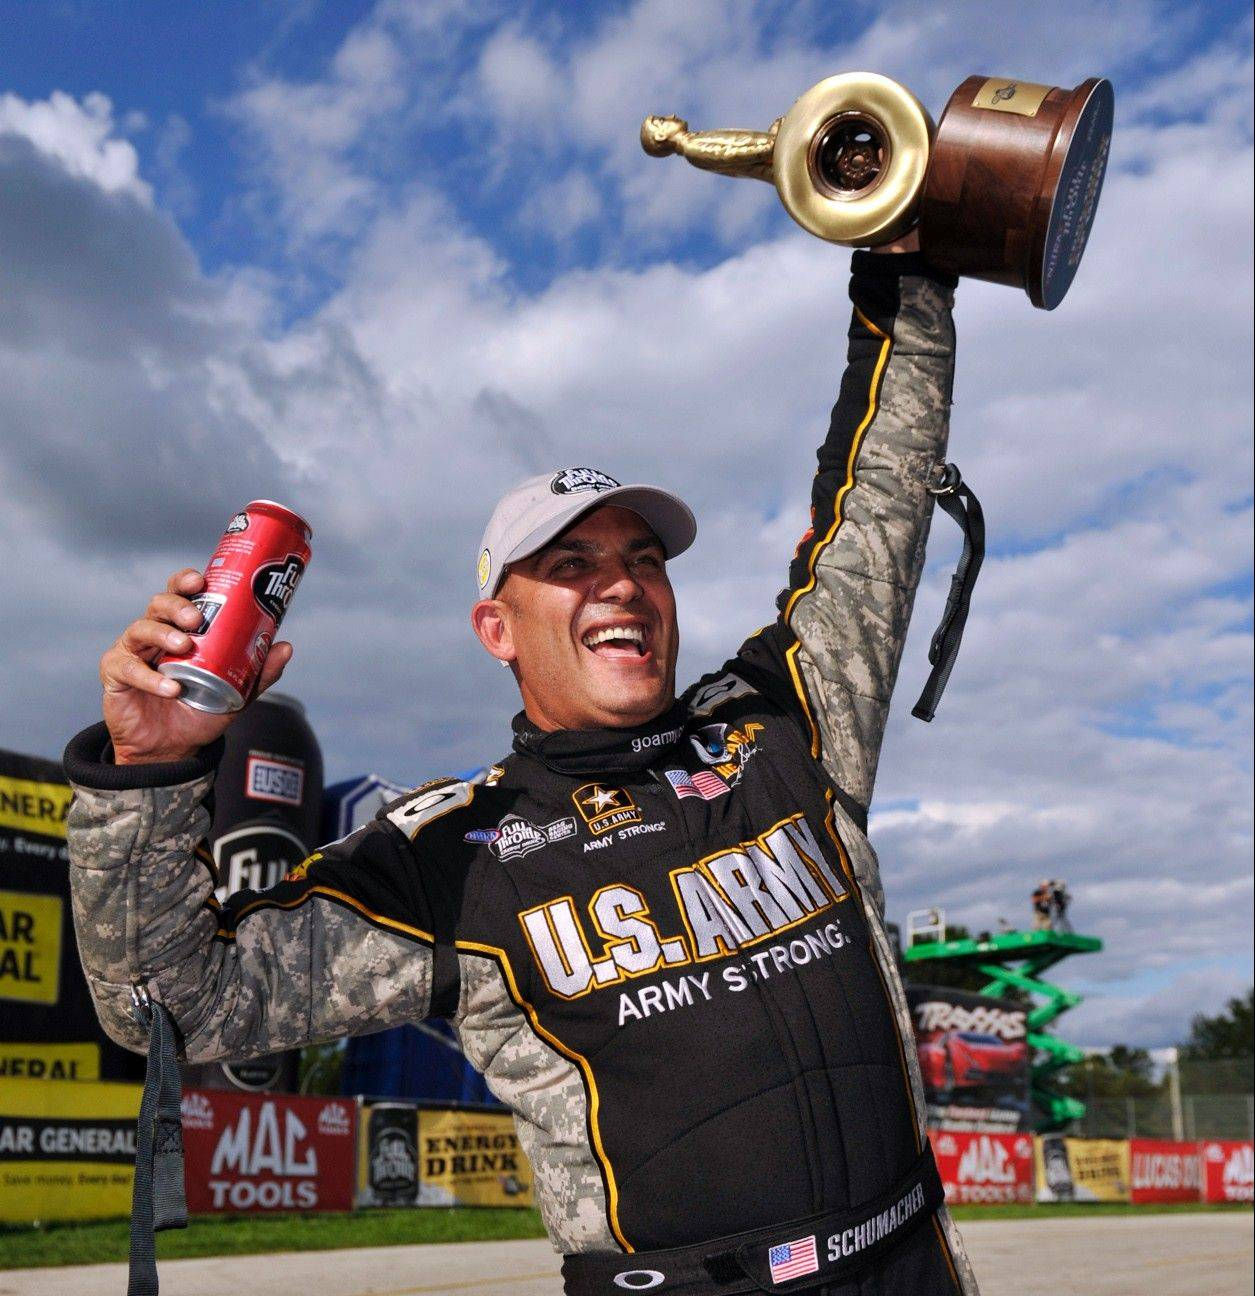 Tony Schumacher of Long Grove celebrates his record-breaking ninth Top Fuel win earlier this fall at the U.S. Nationals. He will vie with teammate Anton Brown for the title this weekend.